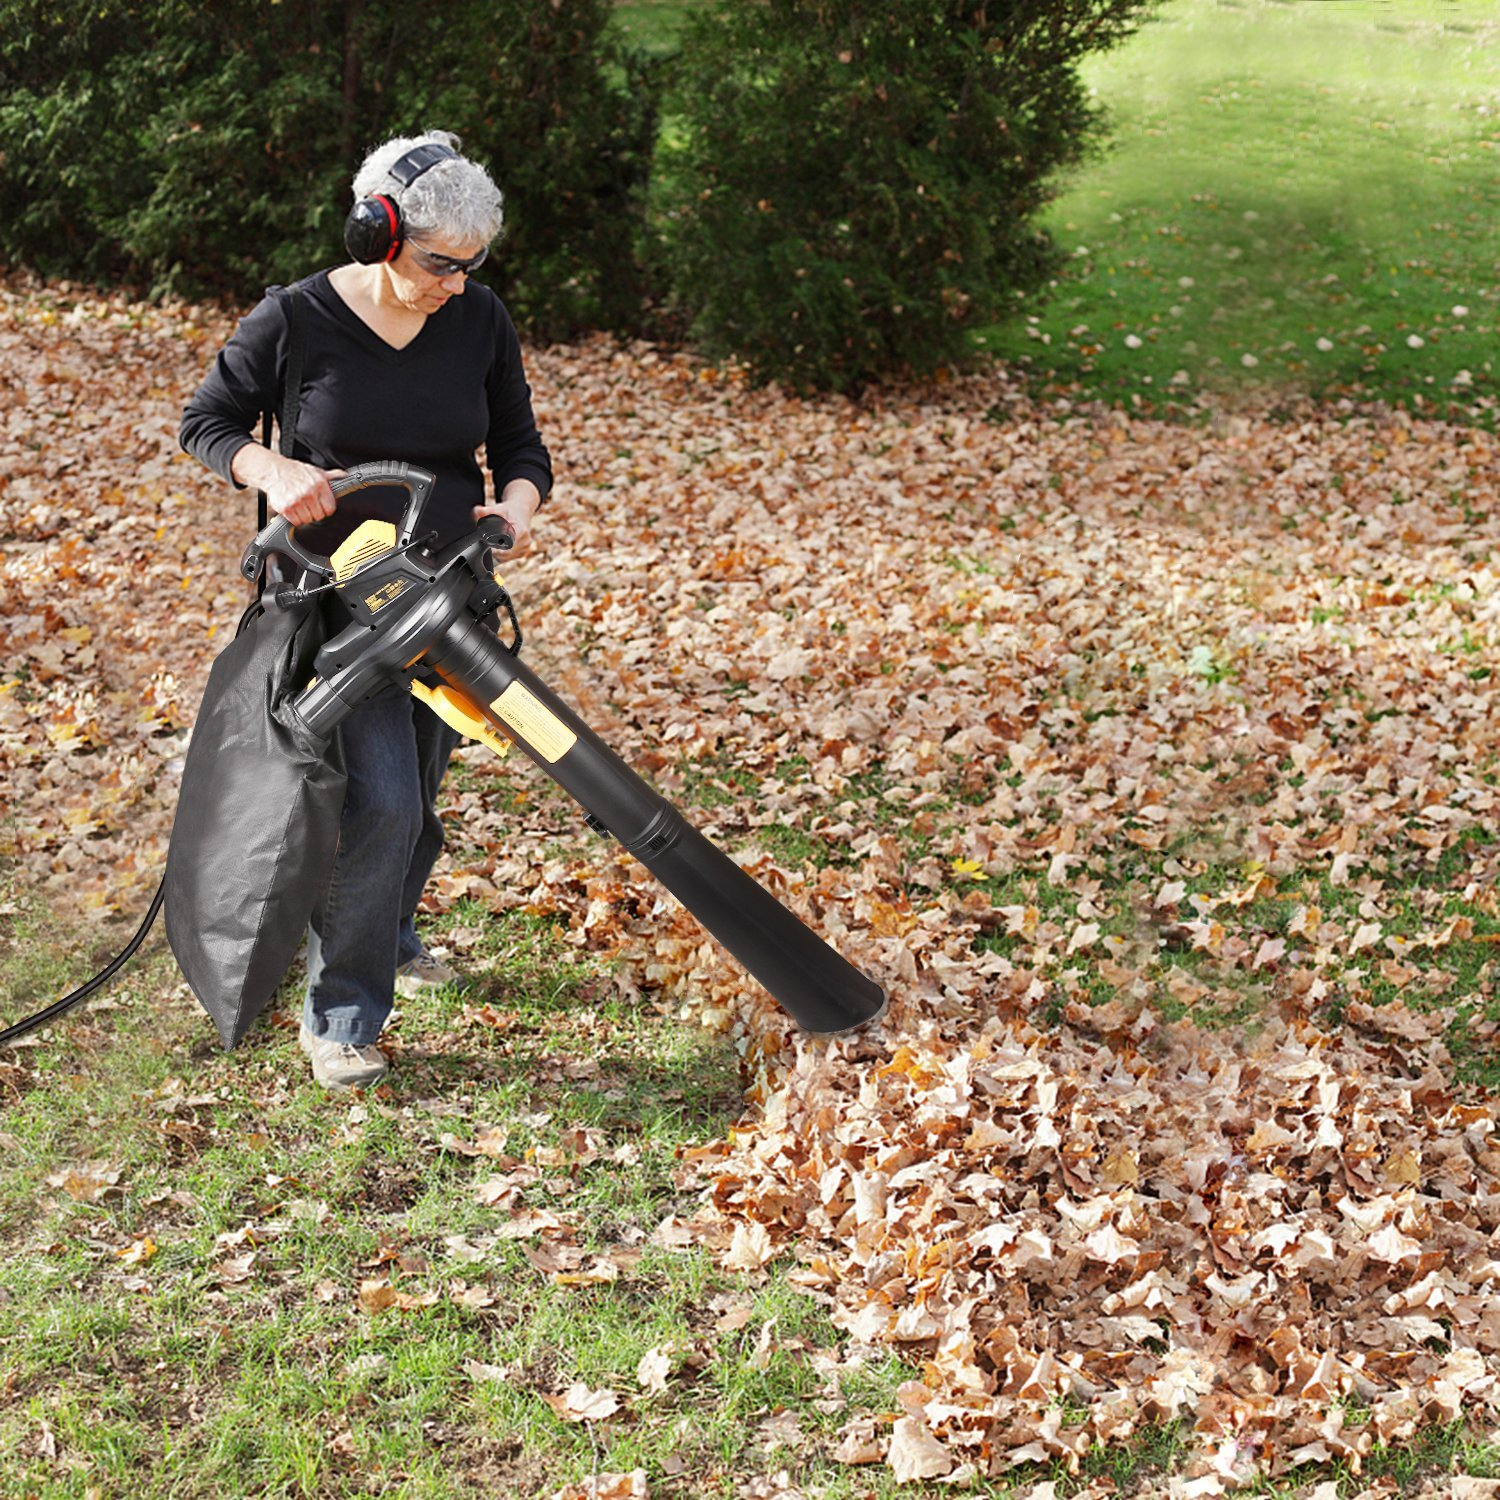 Leaf Blower Vacuum, TECCPO TABV01G 12-Amp 250MPH 410CFM 3 in 1 corded electric Two-Speed Sweeper/Vac/Mulcher, Plastic Impeller Metal Blade, Ideal for Lawn and Garden by TECCPO (Image #7)